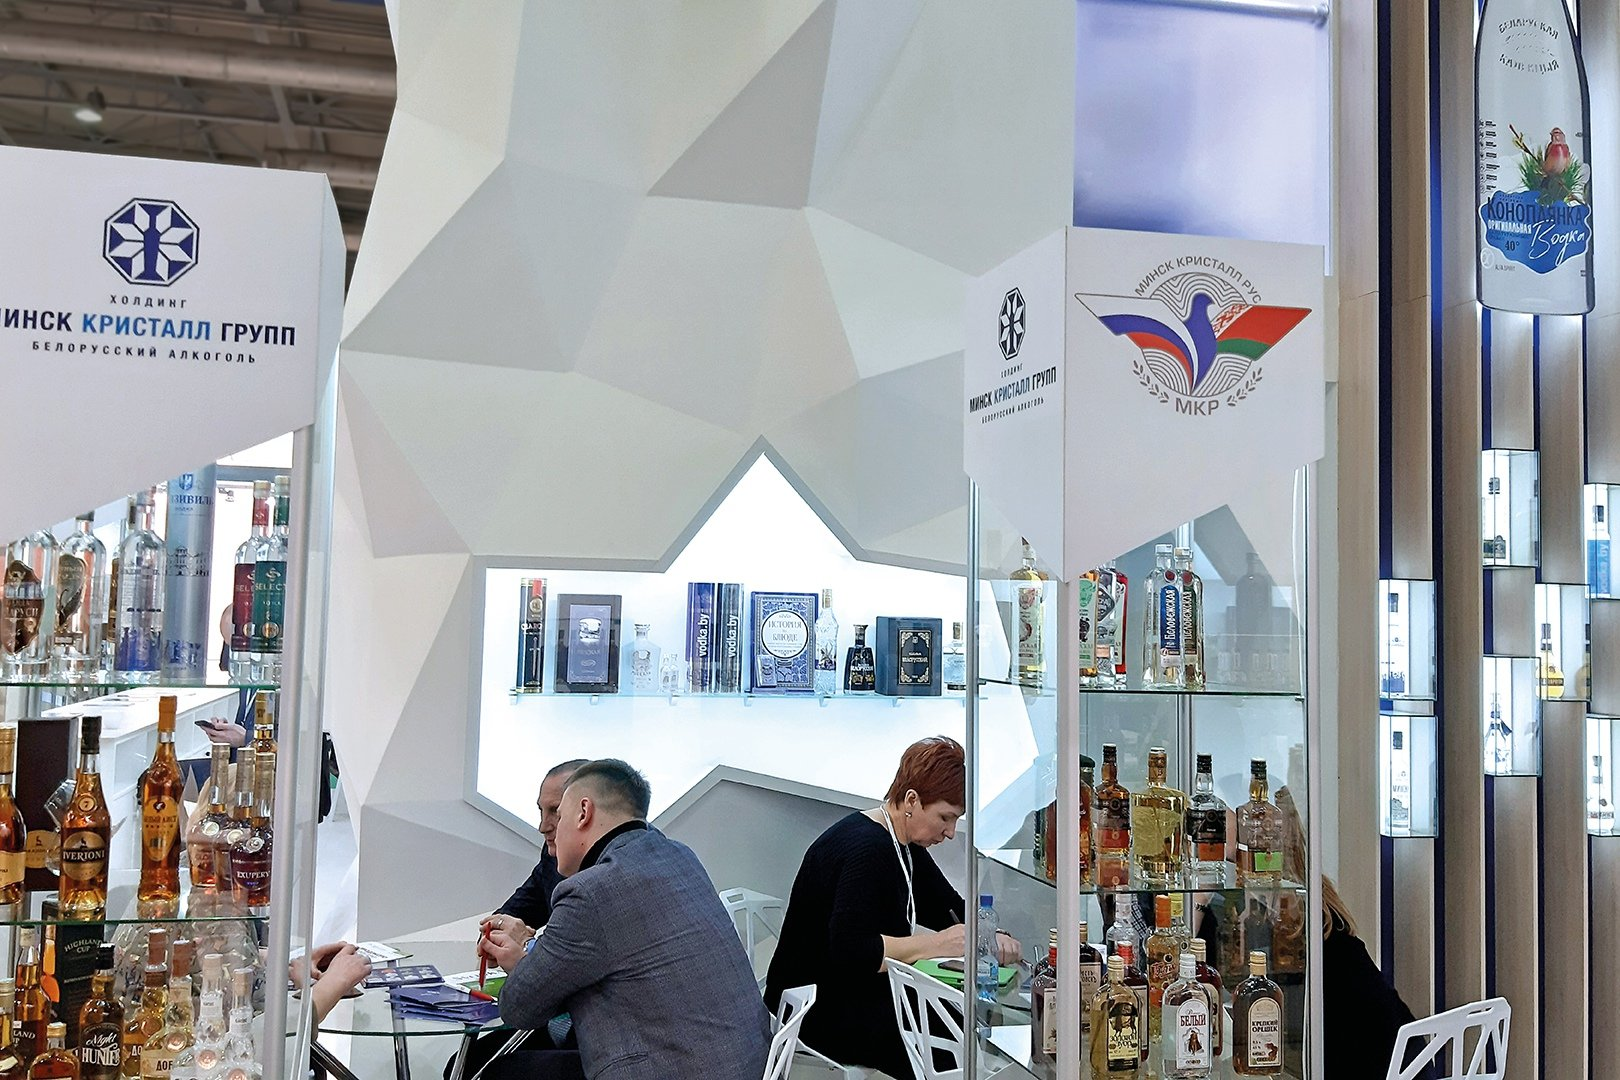 booth of Minsk Crystall Group at the Russian exhibition